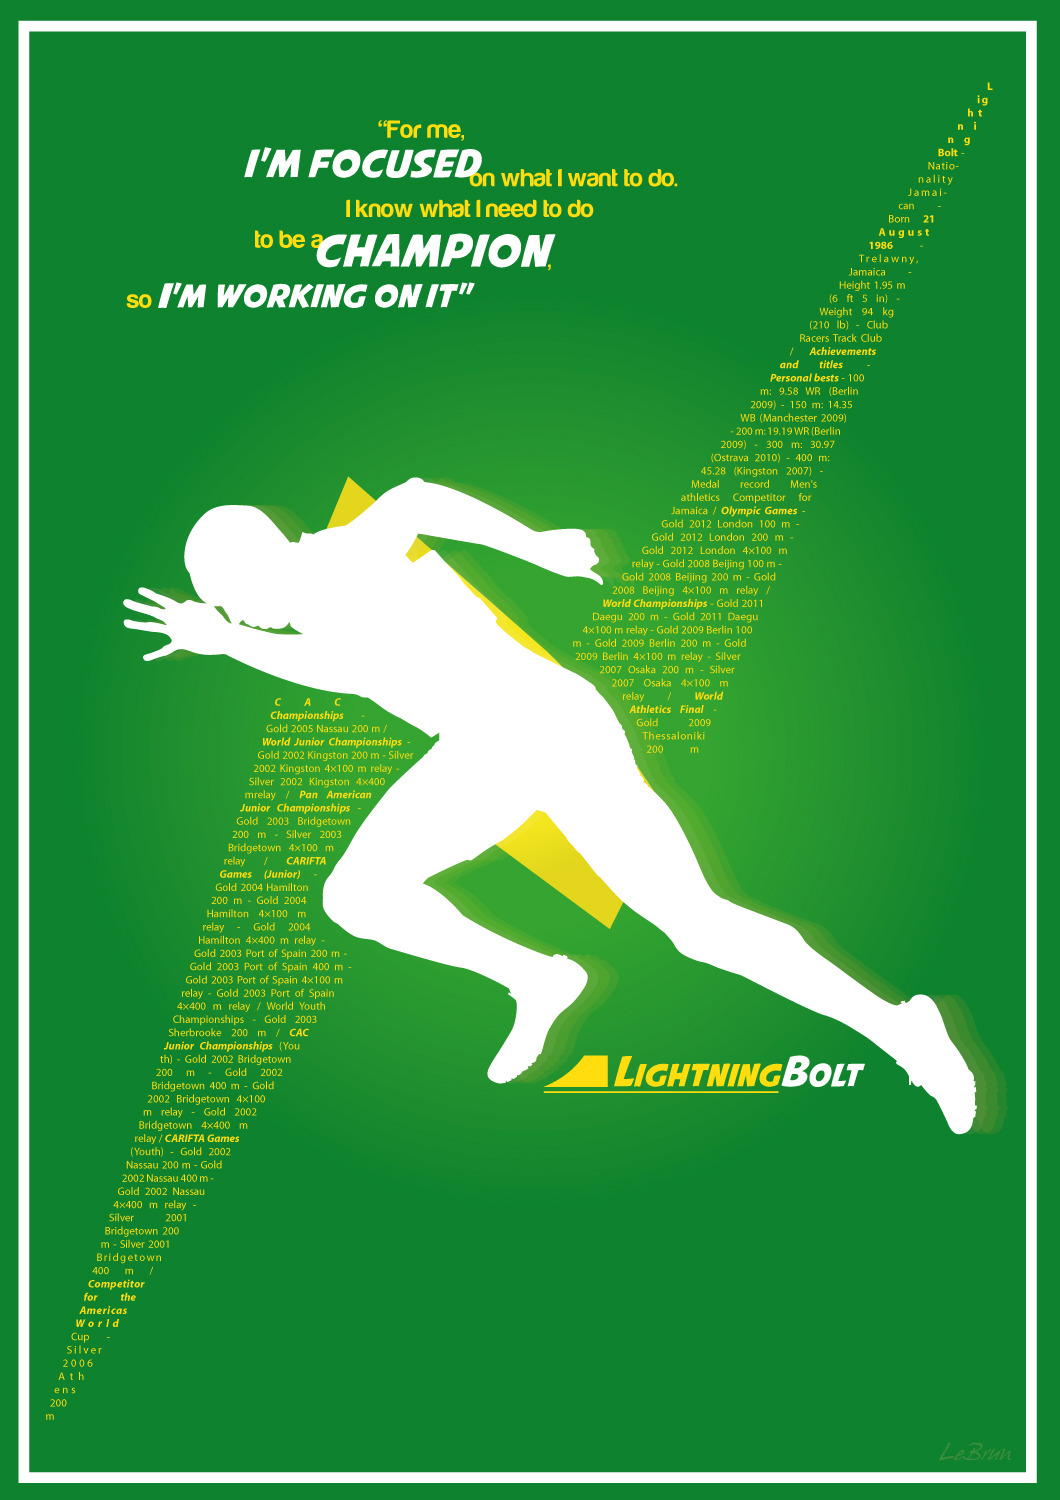 Lightning Bolt Tribute poster to Usain Bolt, the fastest man on earth